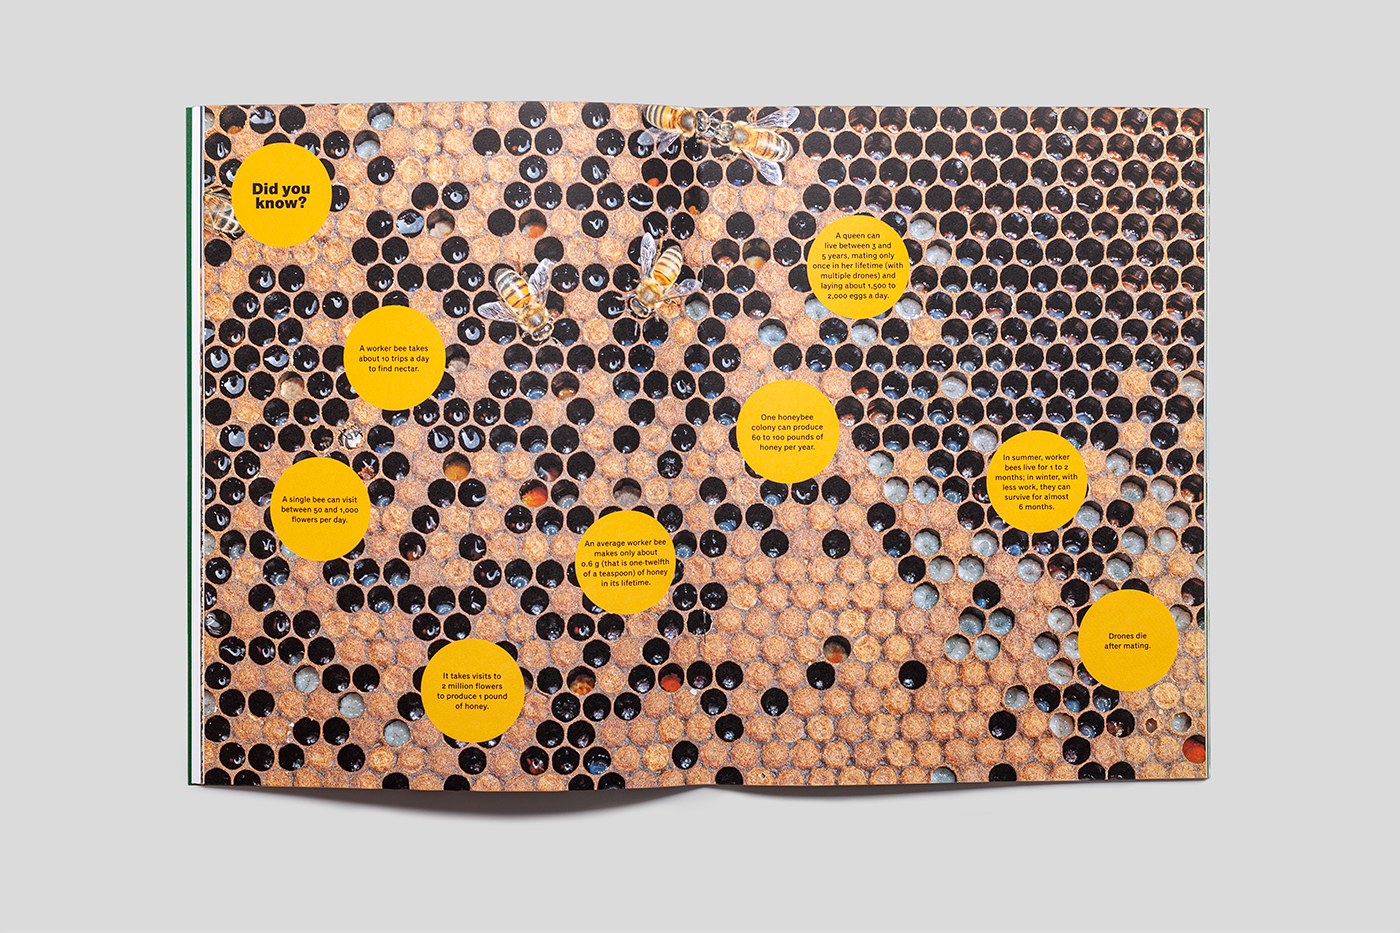 Magazine spread showing close up of bee hive and bees